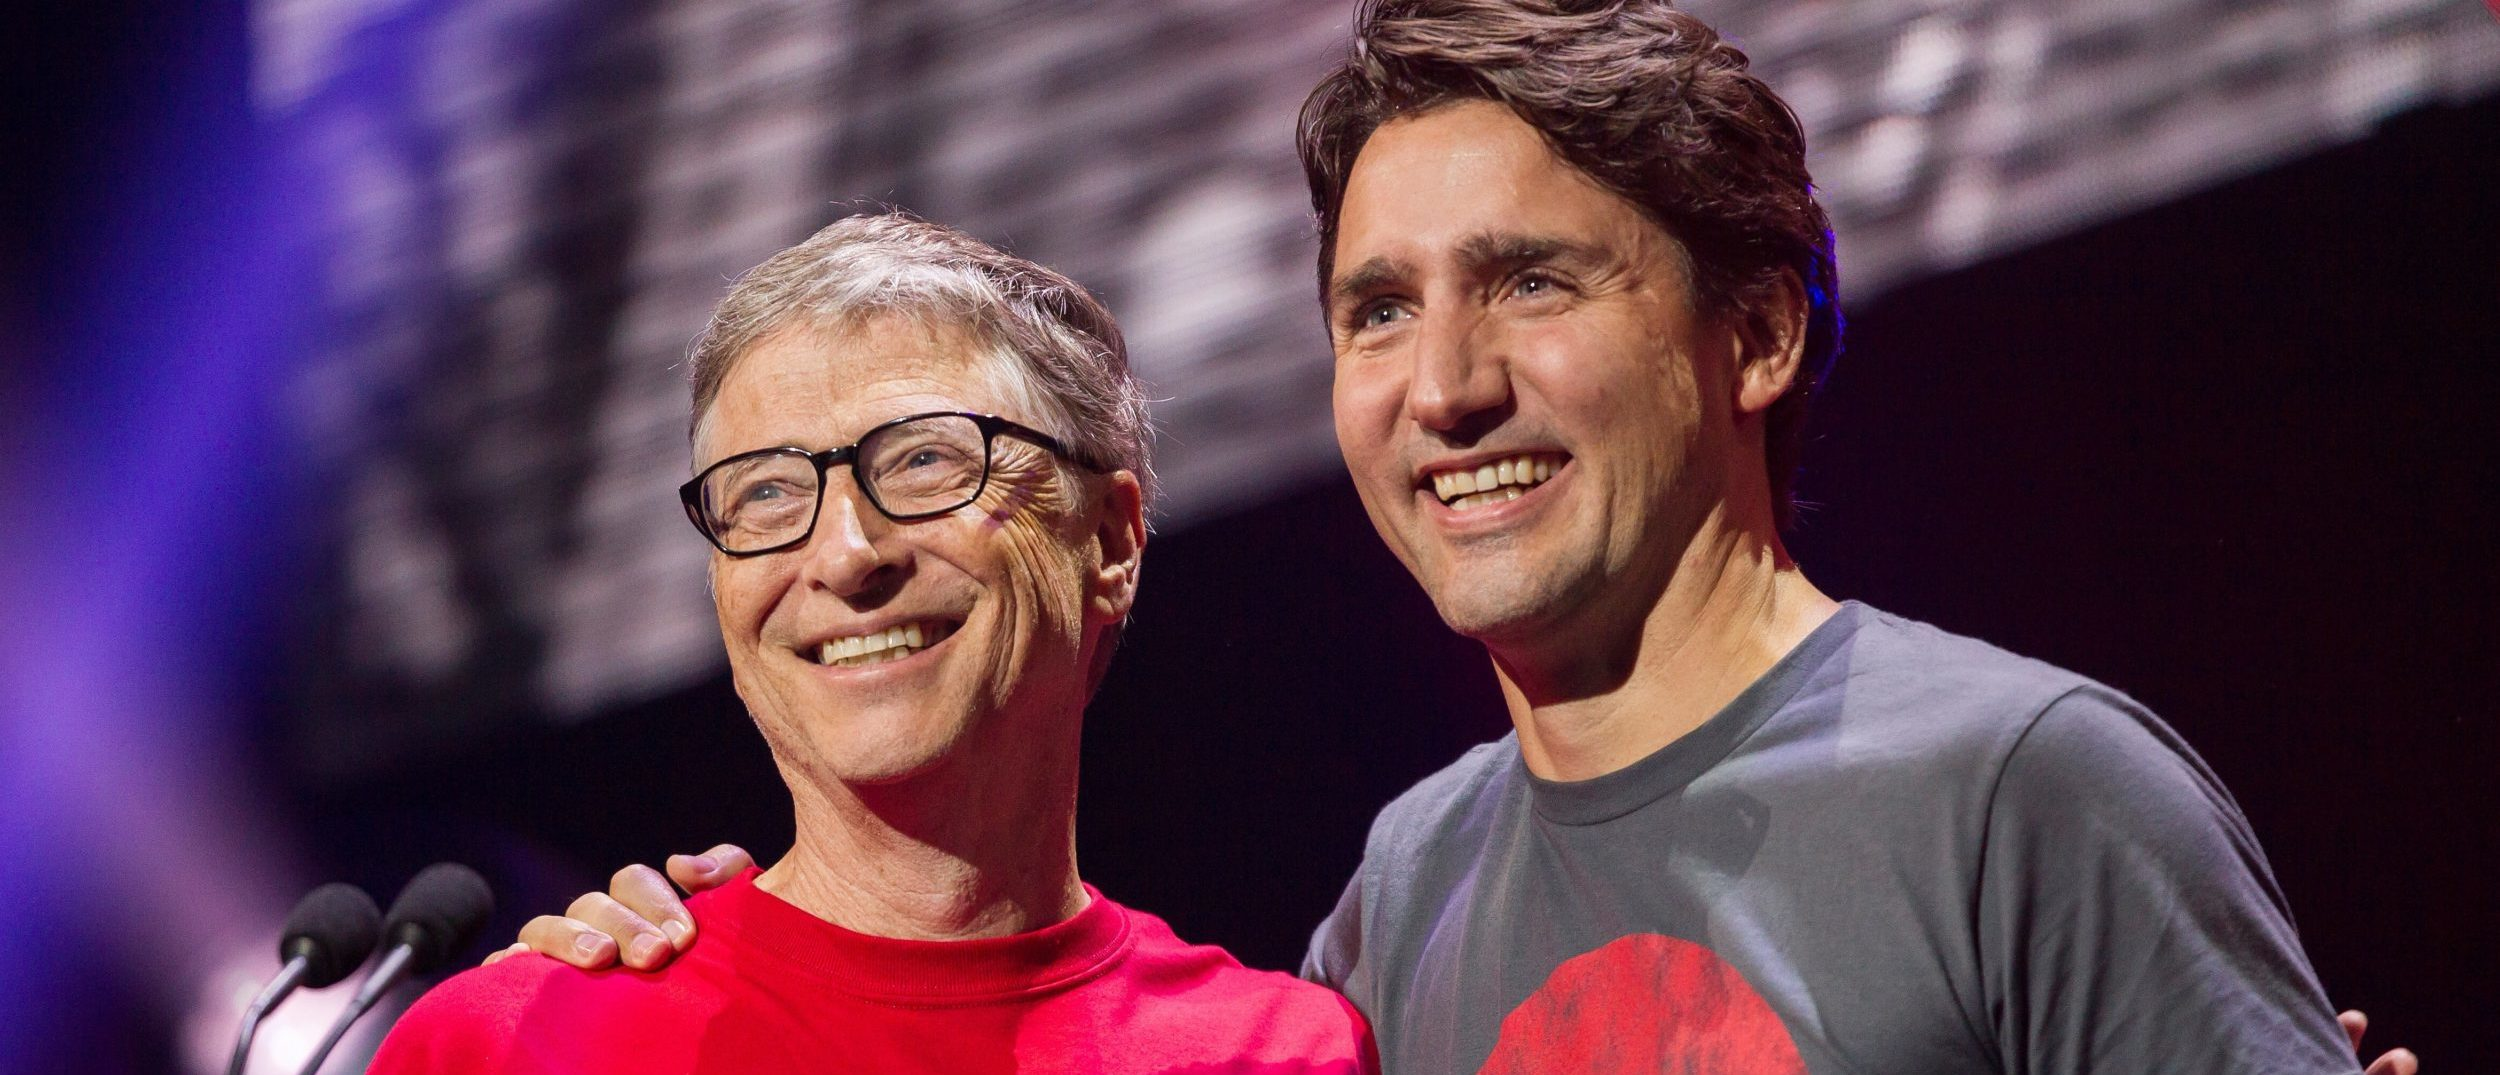 Billionaire philanthropist Bill Gates receives a hug from Canadian Prime Minister Justin Trudeau at the Global Citizen Concert to End AIDS, Tuberculosis and Malaria in Montreal, Quebec, Canada September 17, 2016. REUTERS/Geoff Robins/POOL